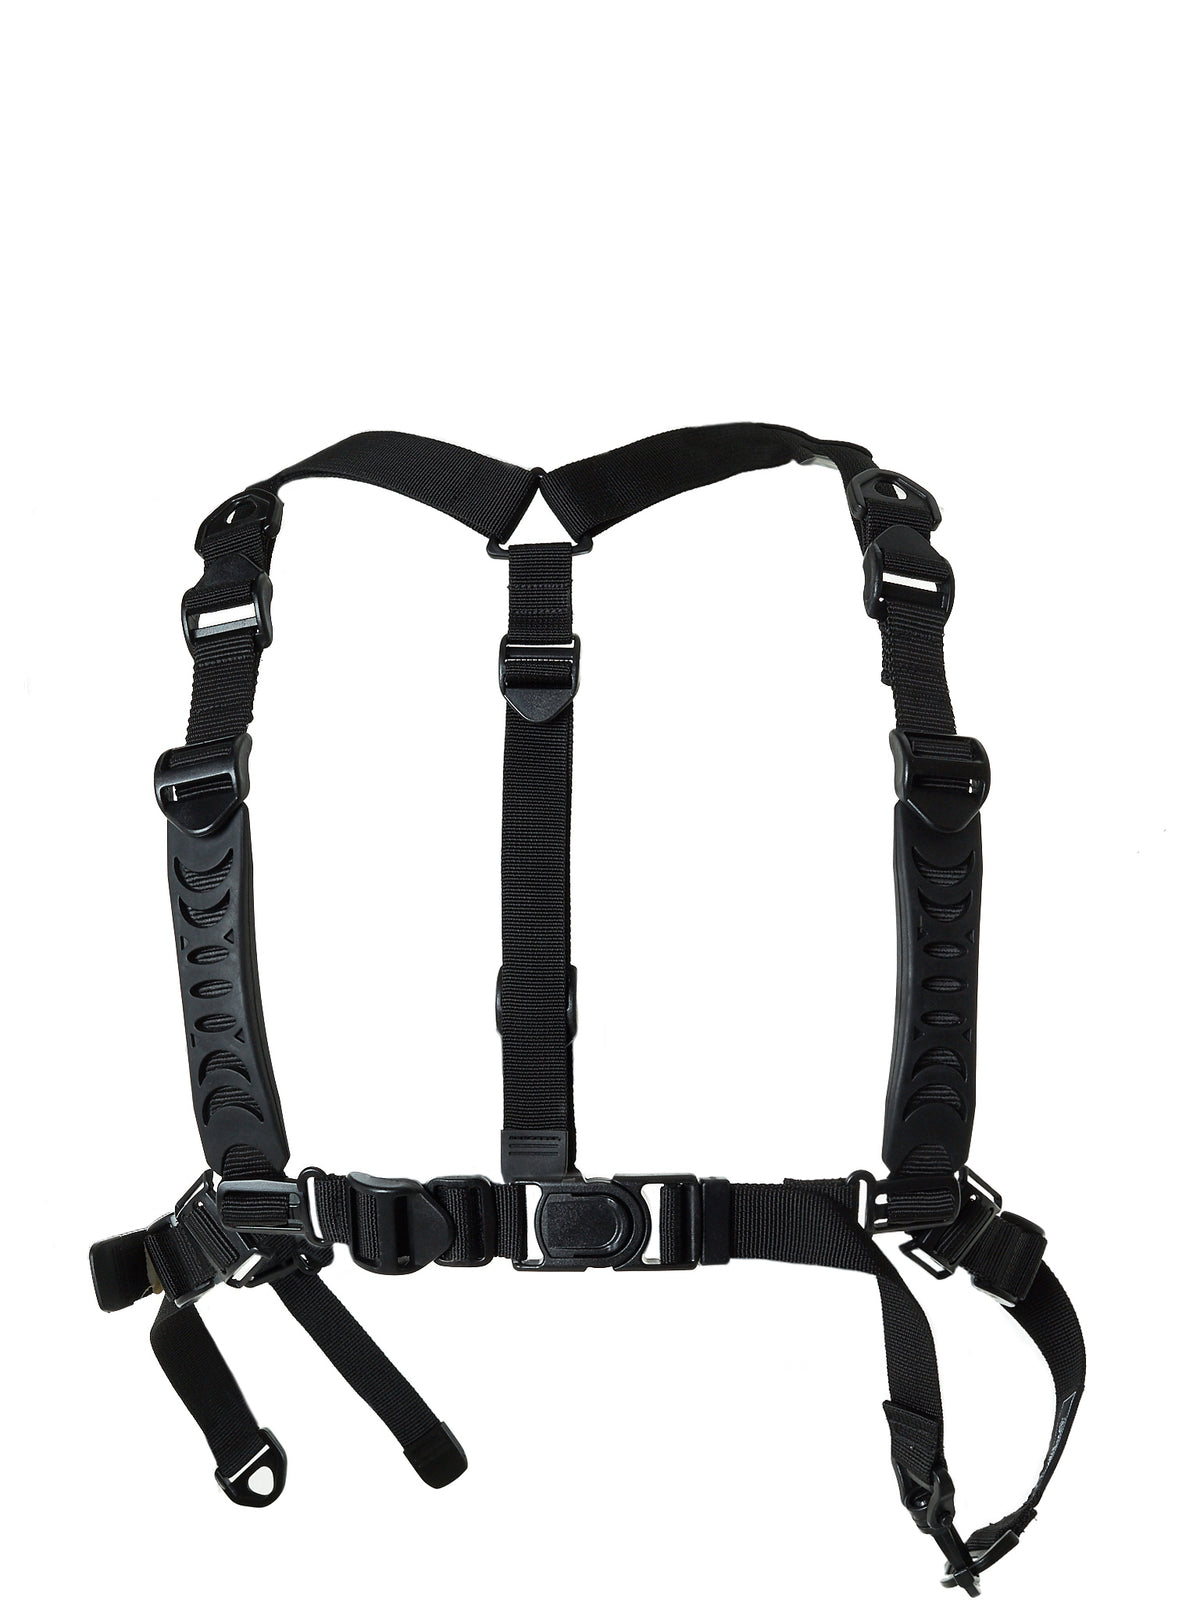 Harness (AC002-A01-RB-H-BLACK)